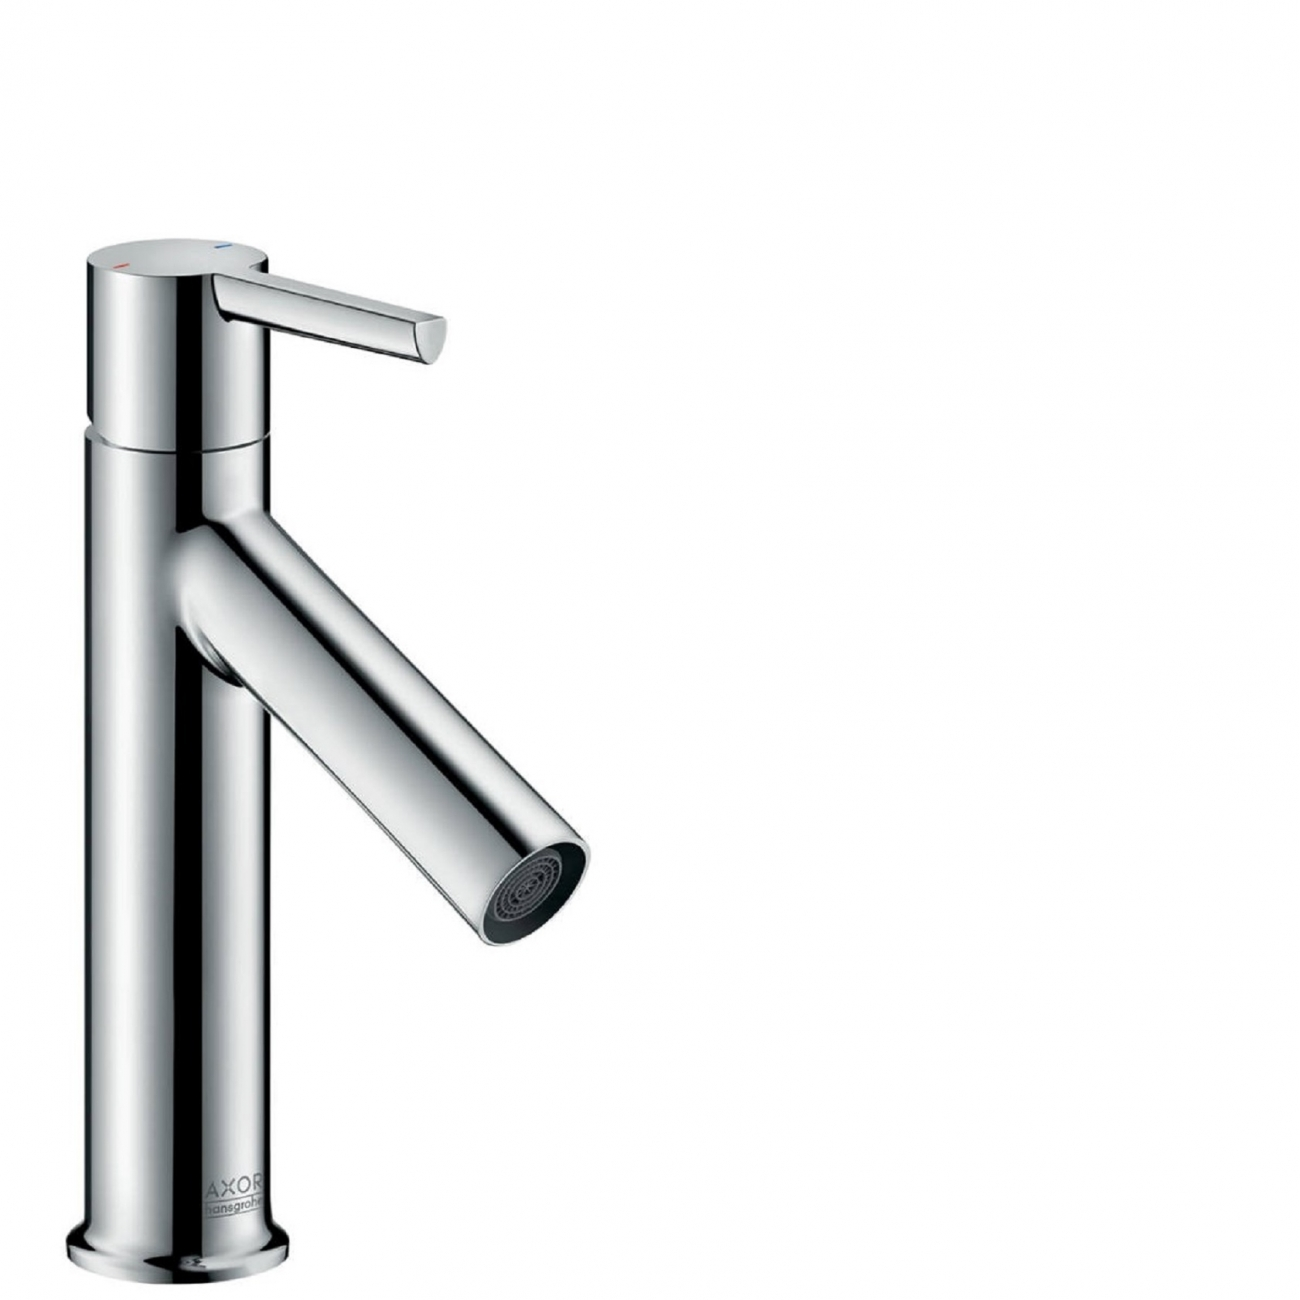 AXOR HANSGROHE STARCK SINGLE LEVER BASIN MIXER - TattaHome